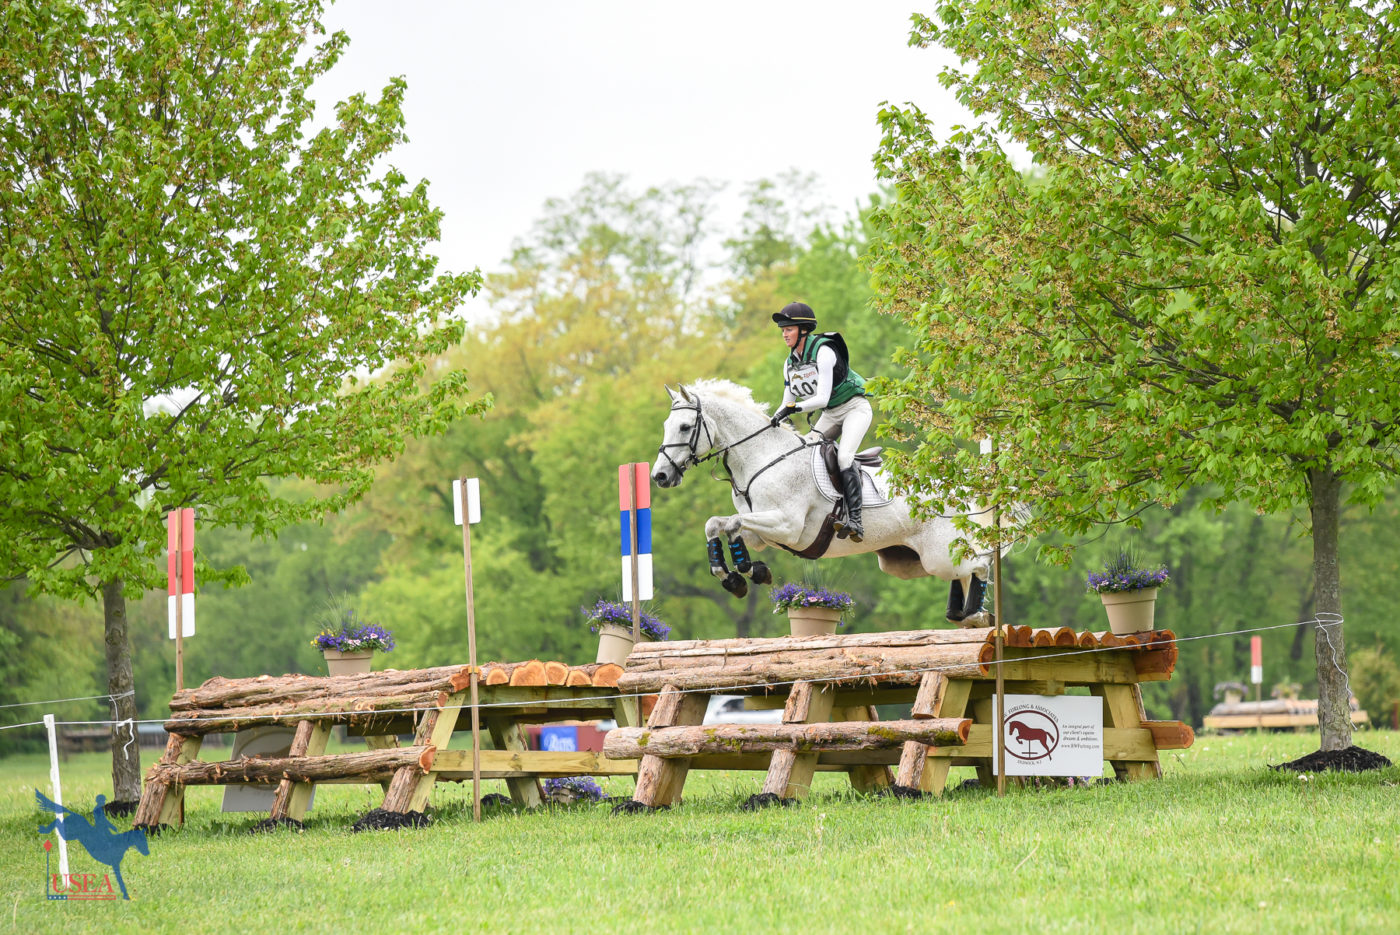 Emily Hamel and Corvett catching some air over the cedar table, one of the new fences on the three-star course. USEA/Jessica Duffy Photo.